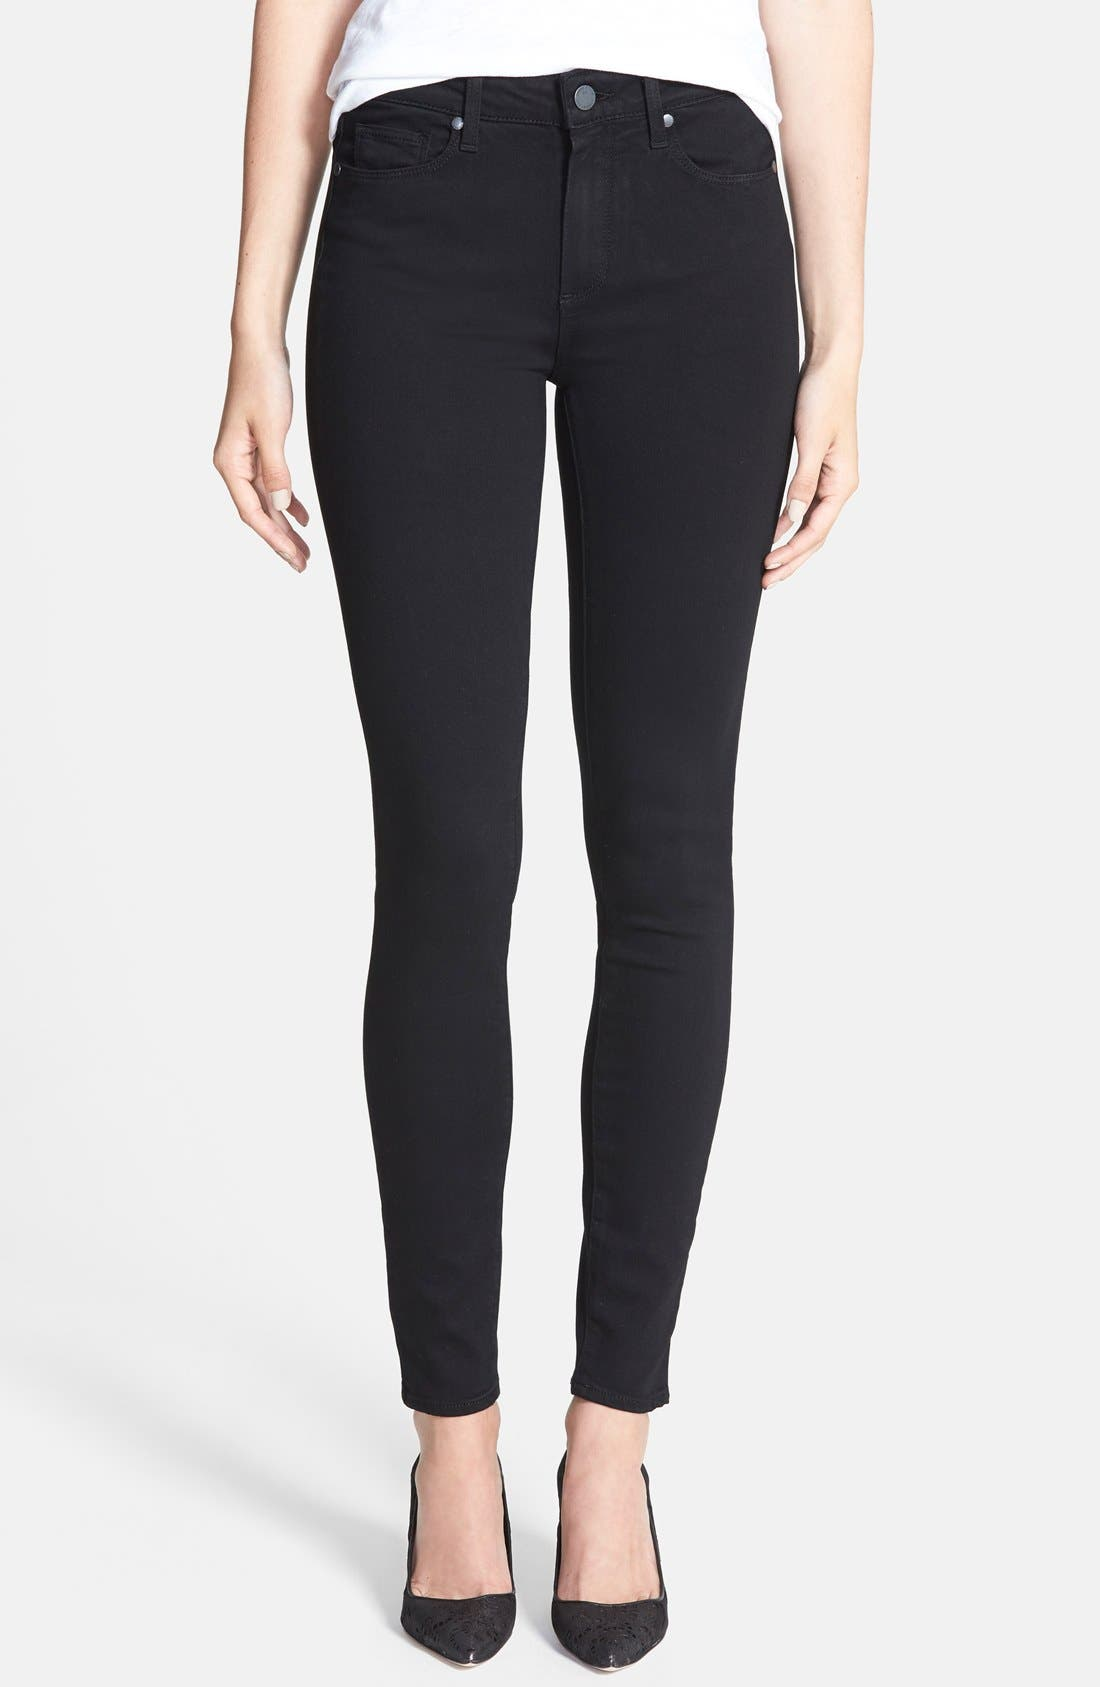 Main Image - PAIGE Transcend - Hoxton High Waist Ultra Skinny Stretch Jeans (Black Shadow)